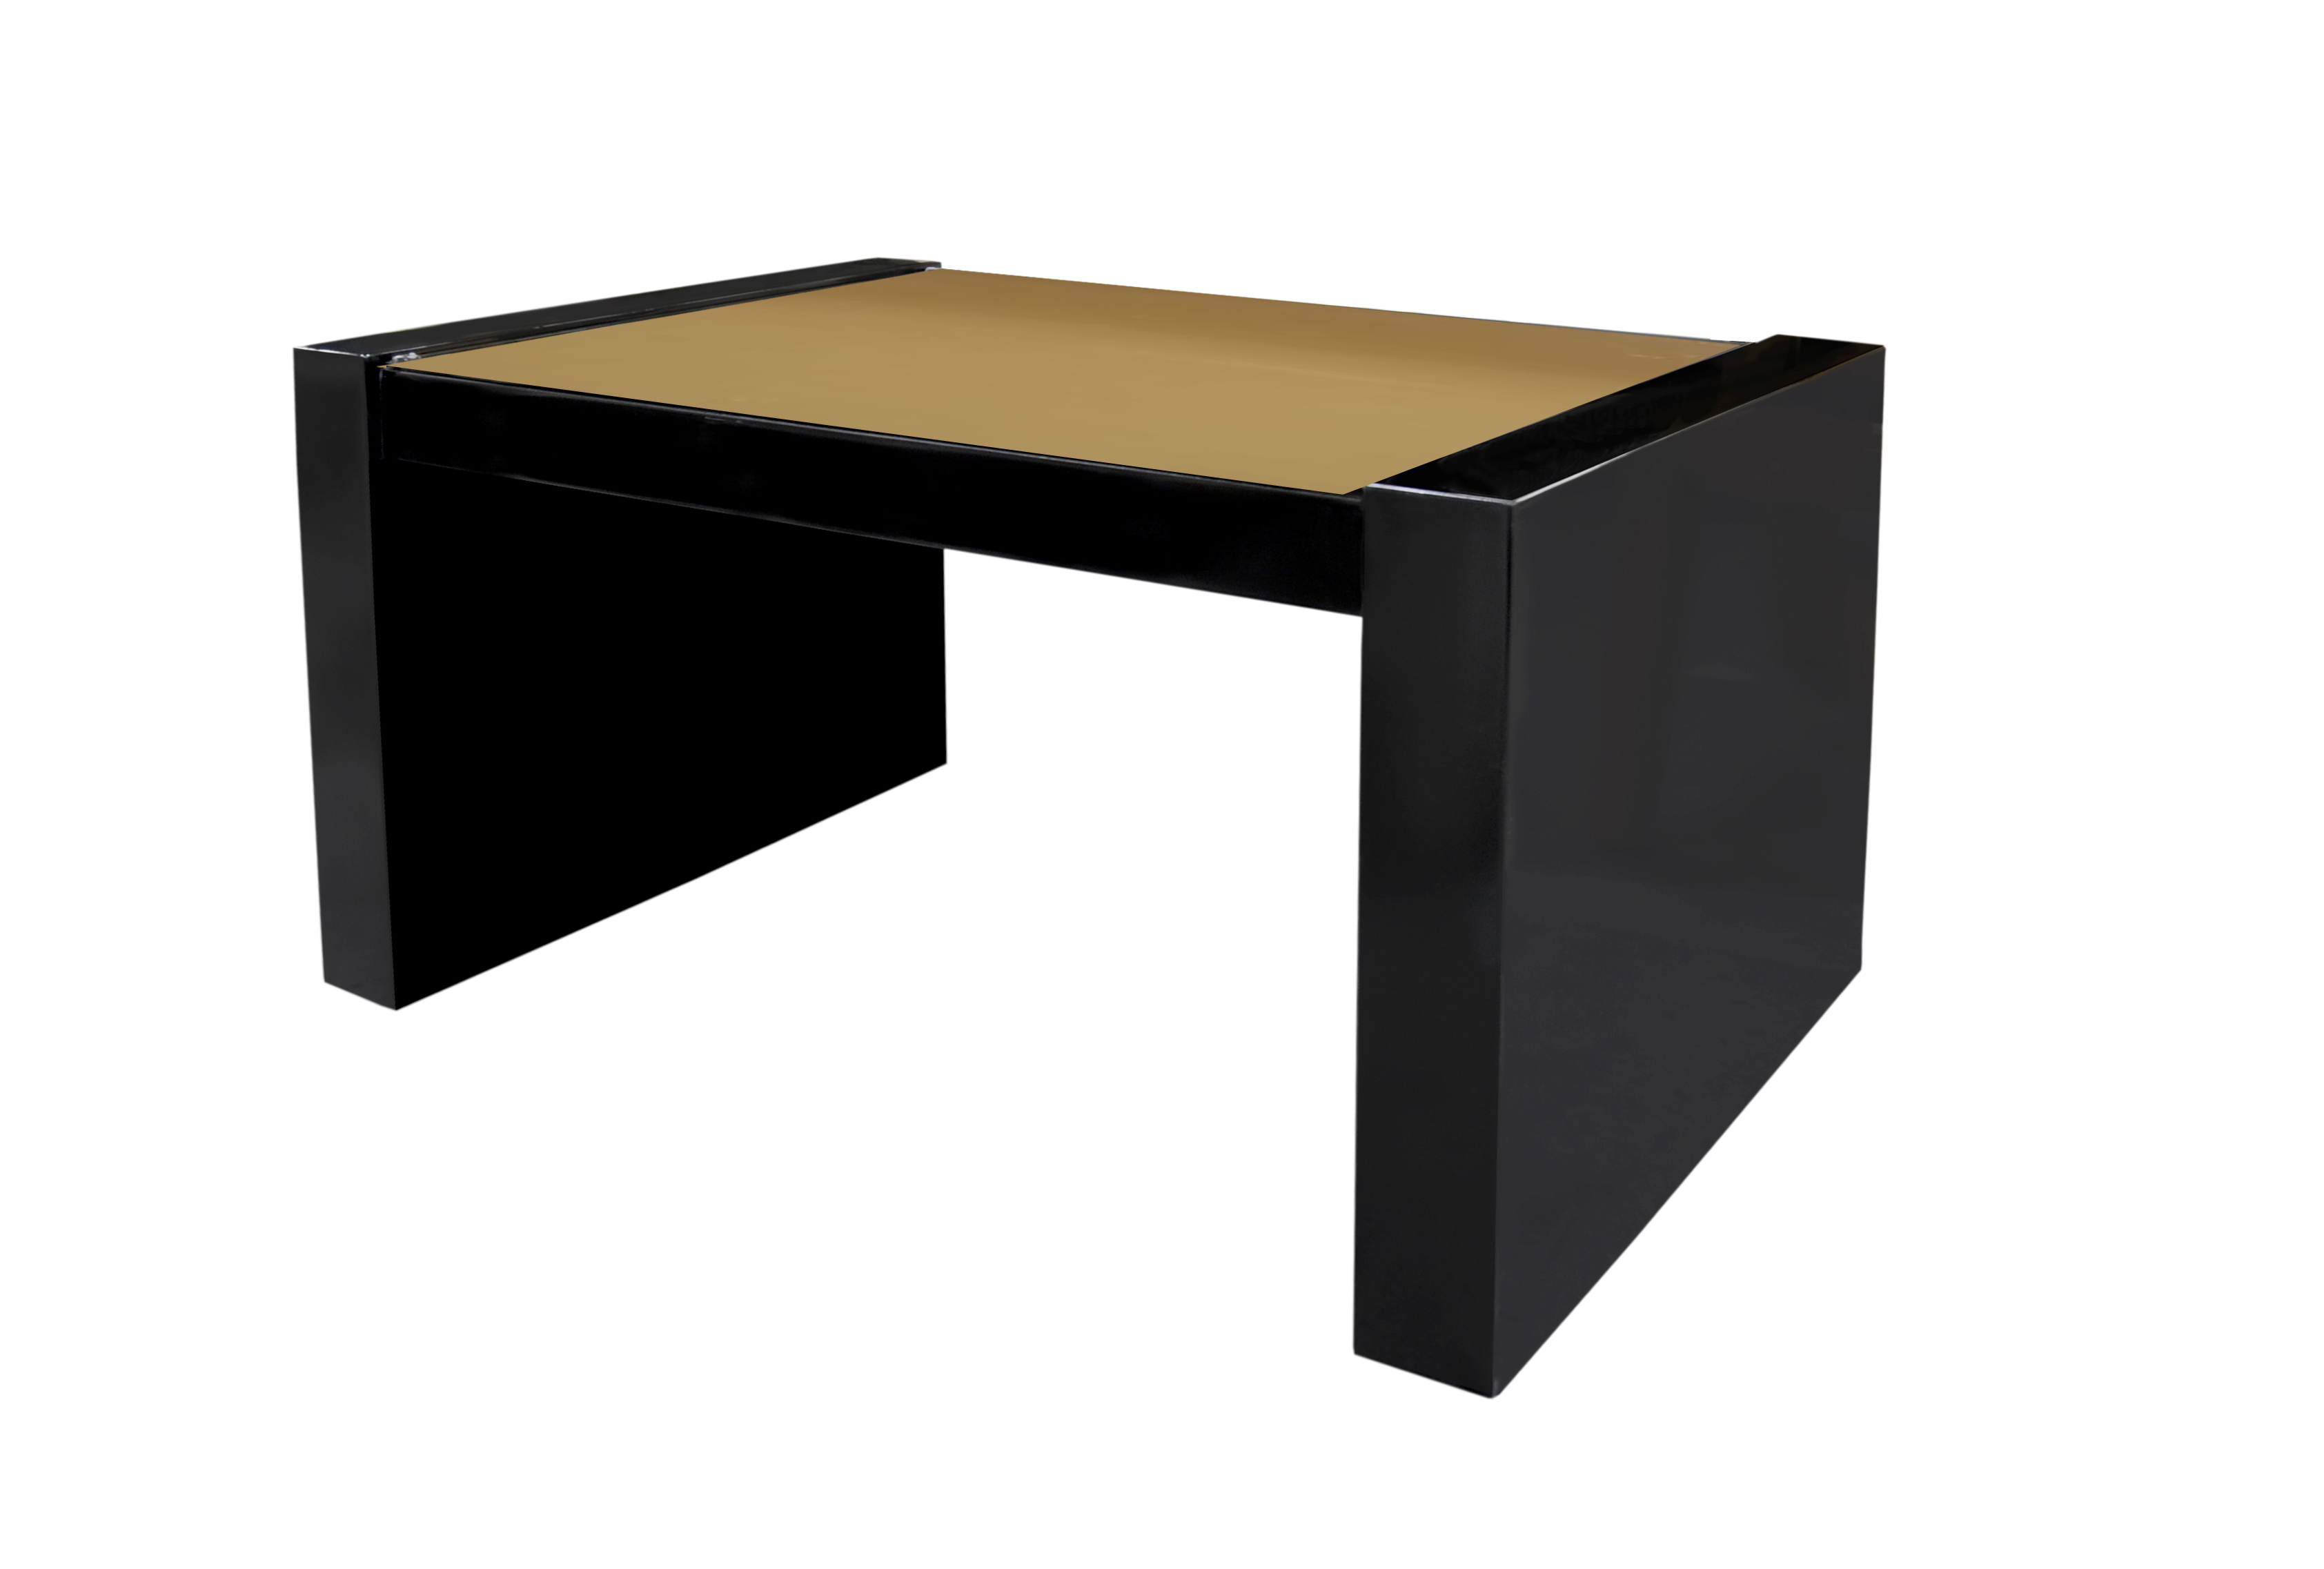 De Stijl Table